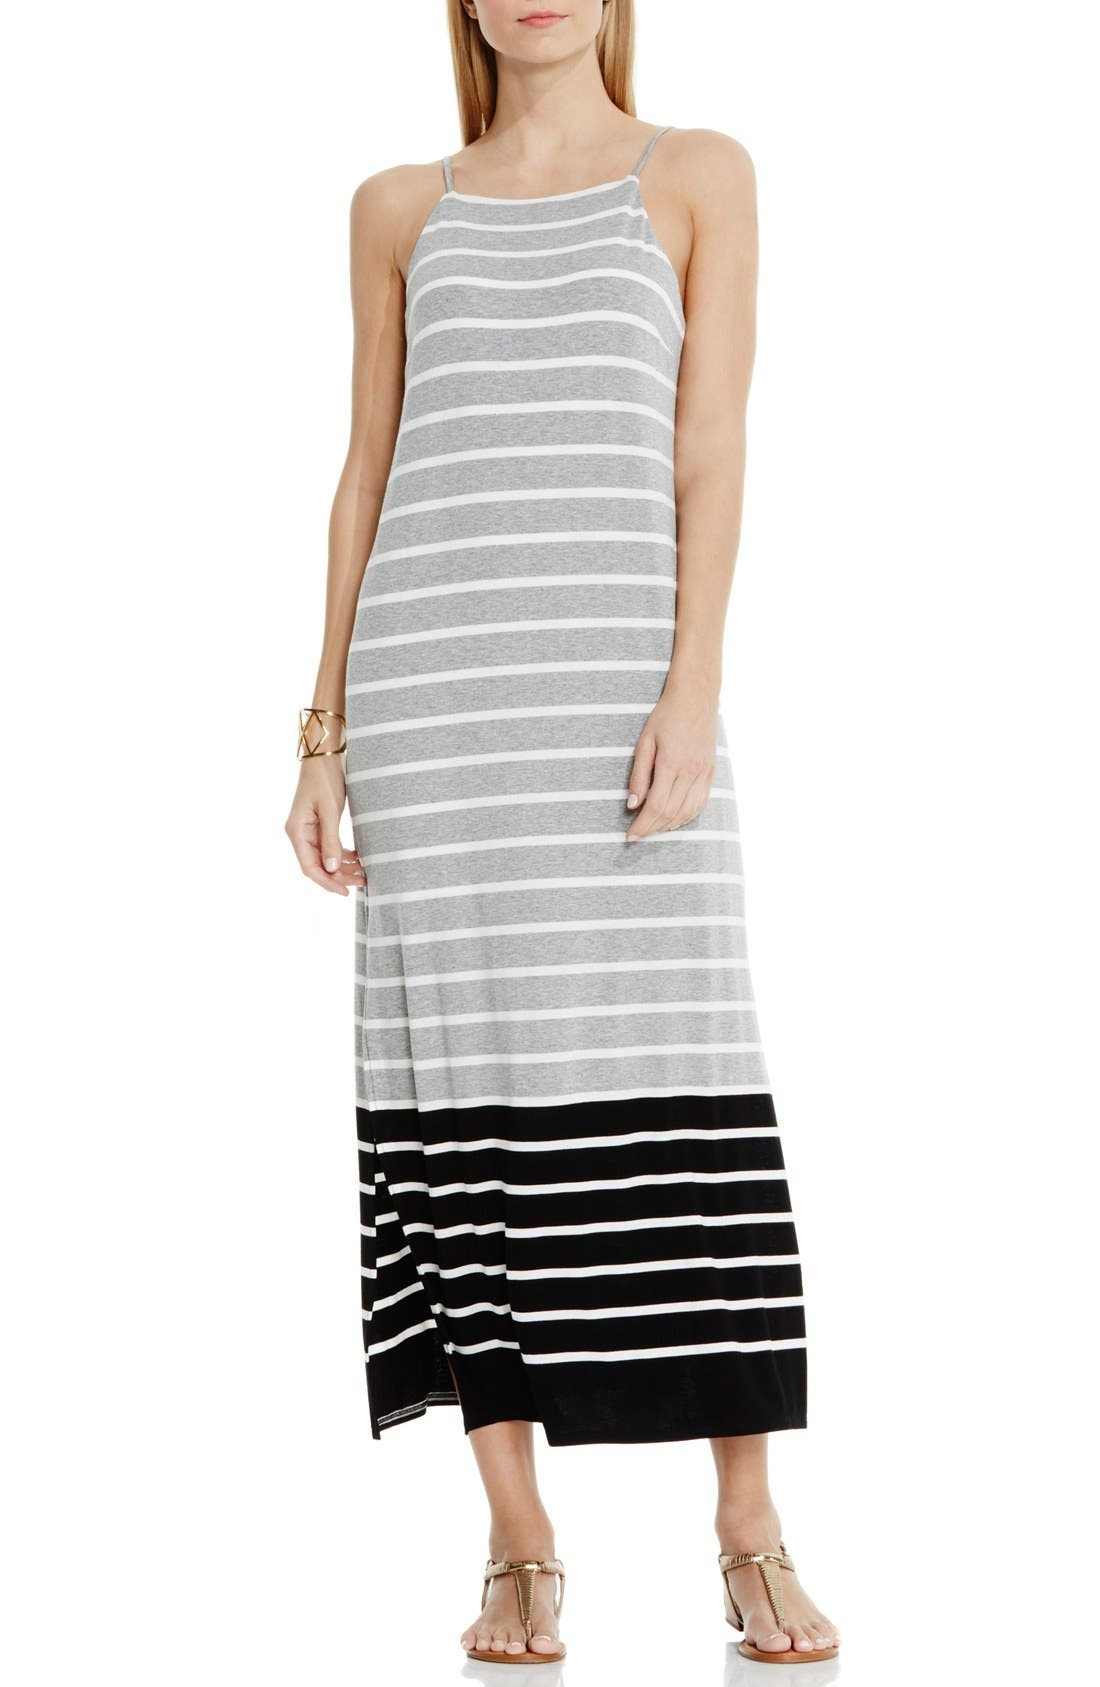 Alternate Image 1 Selected - Vince Camuto Magnet Stripe Maxi Dress (Regular & Petite)